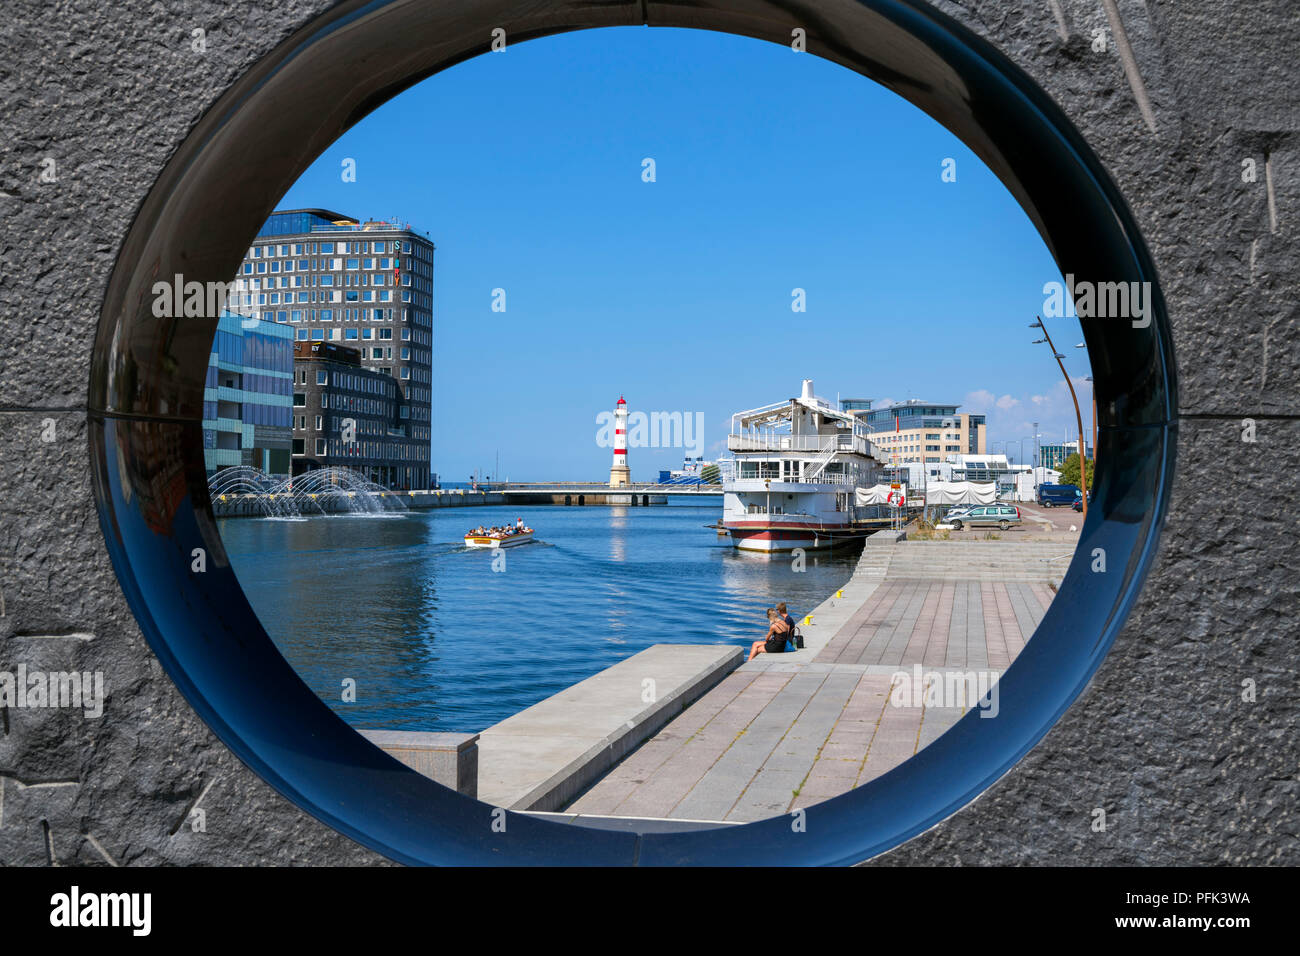 Malmö, Sweden. Harbour viewed through a sculpture on the waterfront, Malmo, Scania, Sweden - Stock Image